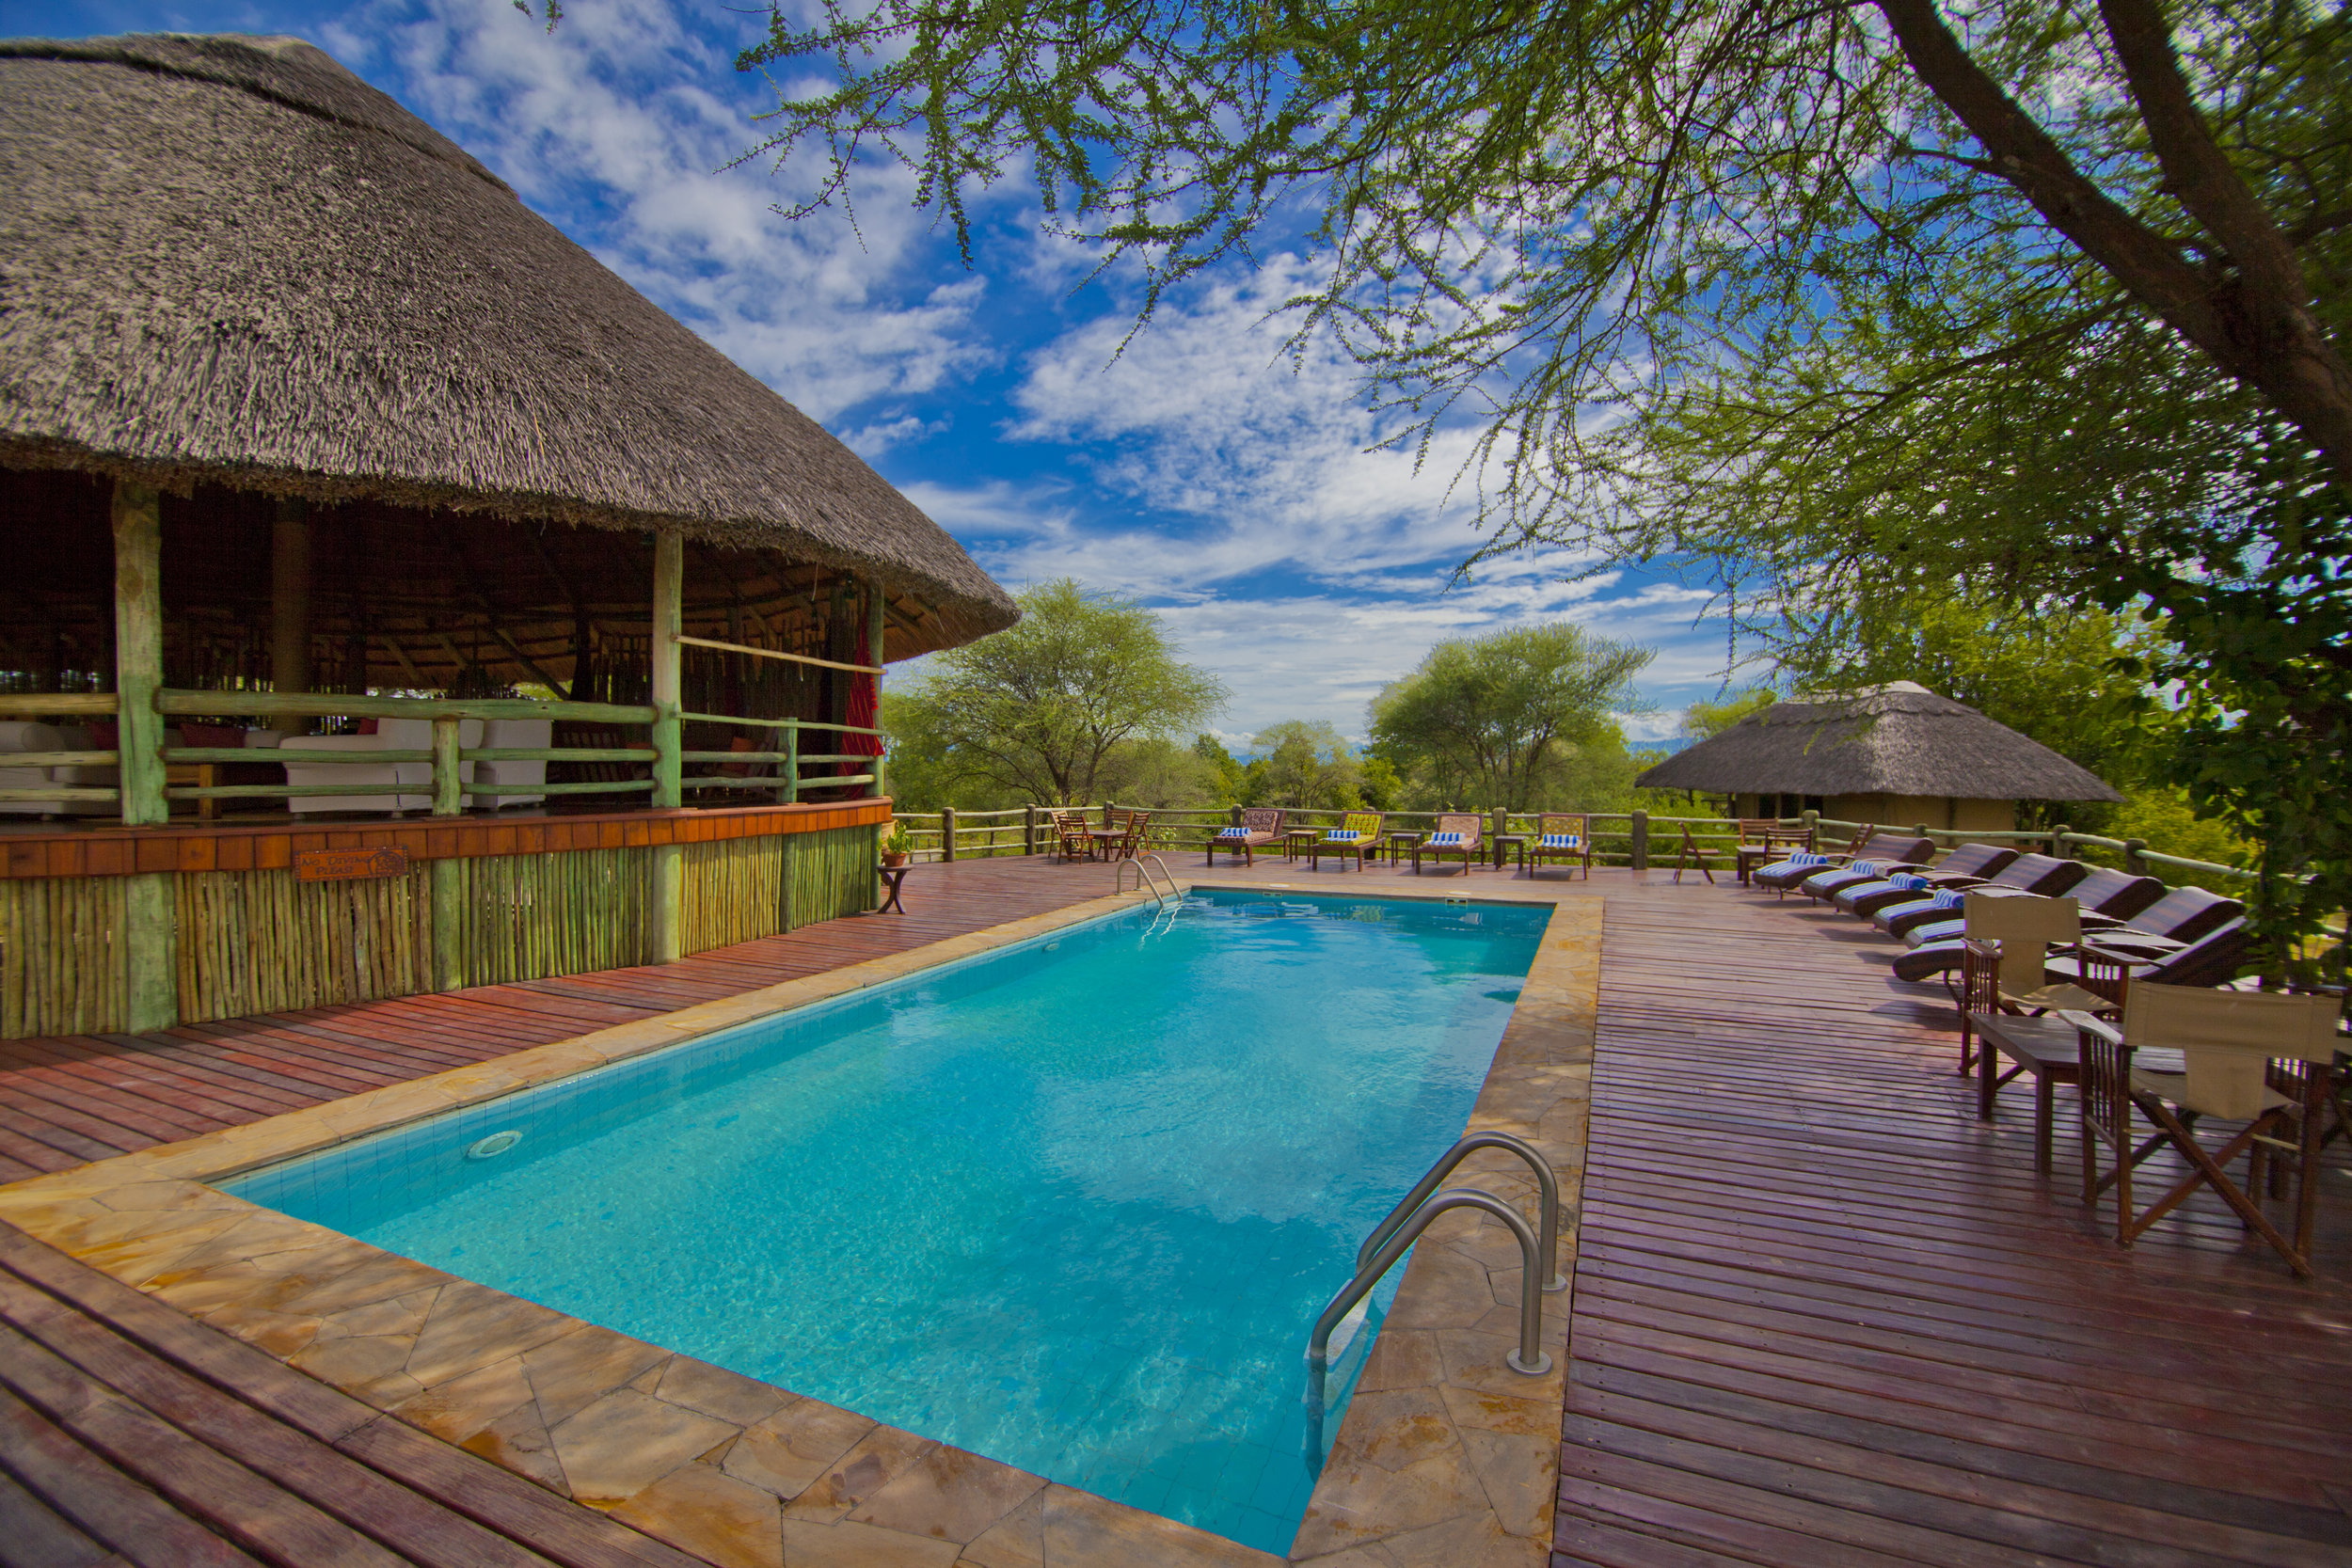 Swimming Pool And Deck - Tarangire River Camp